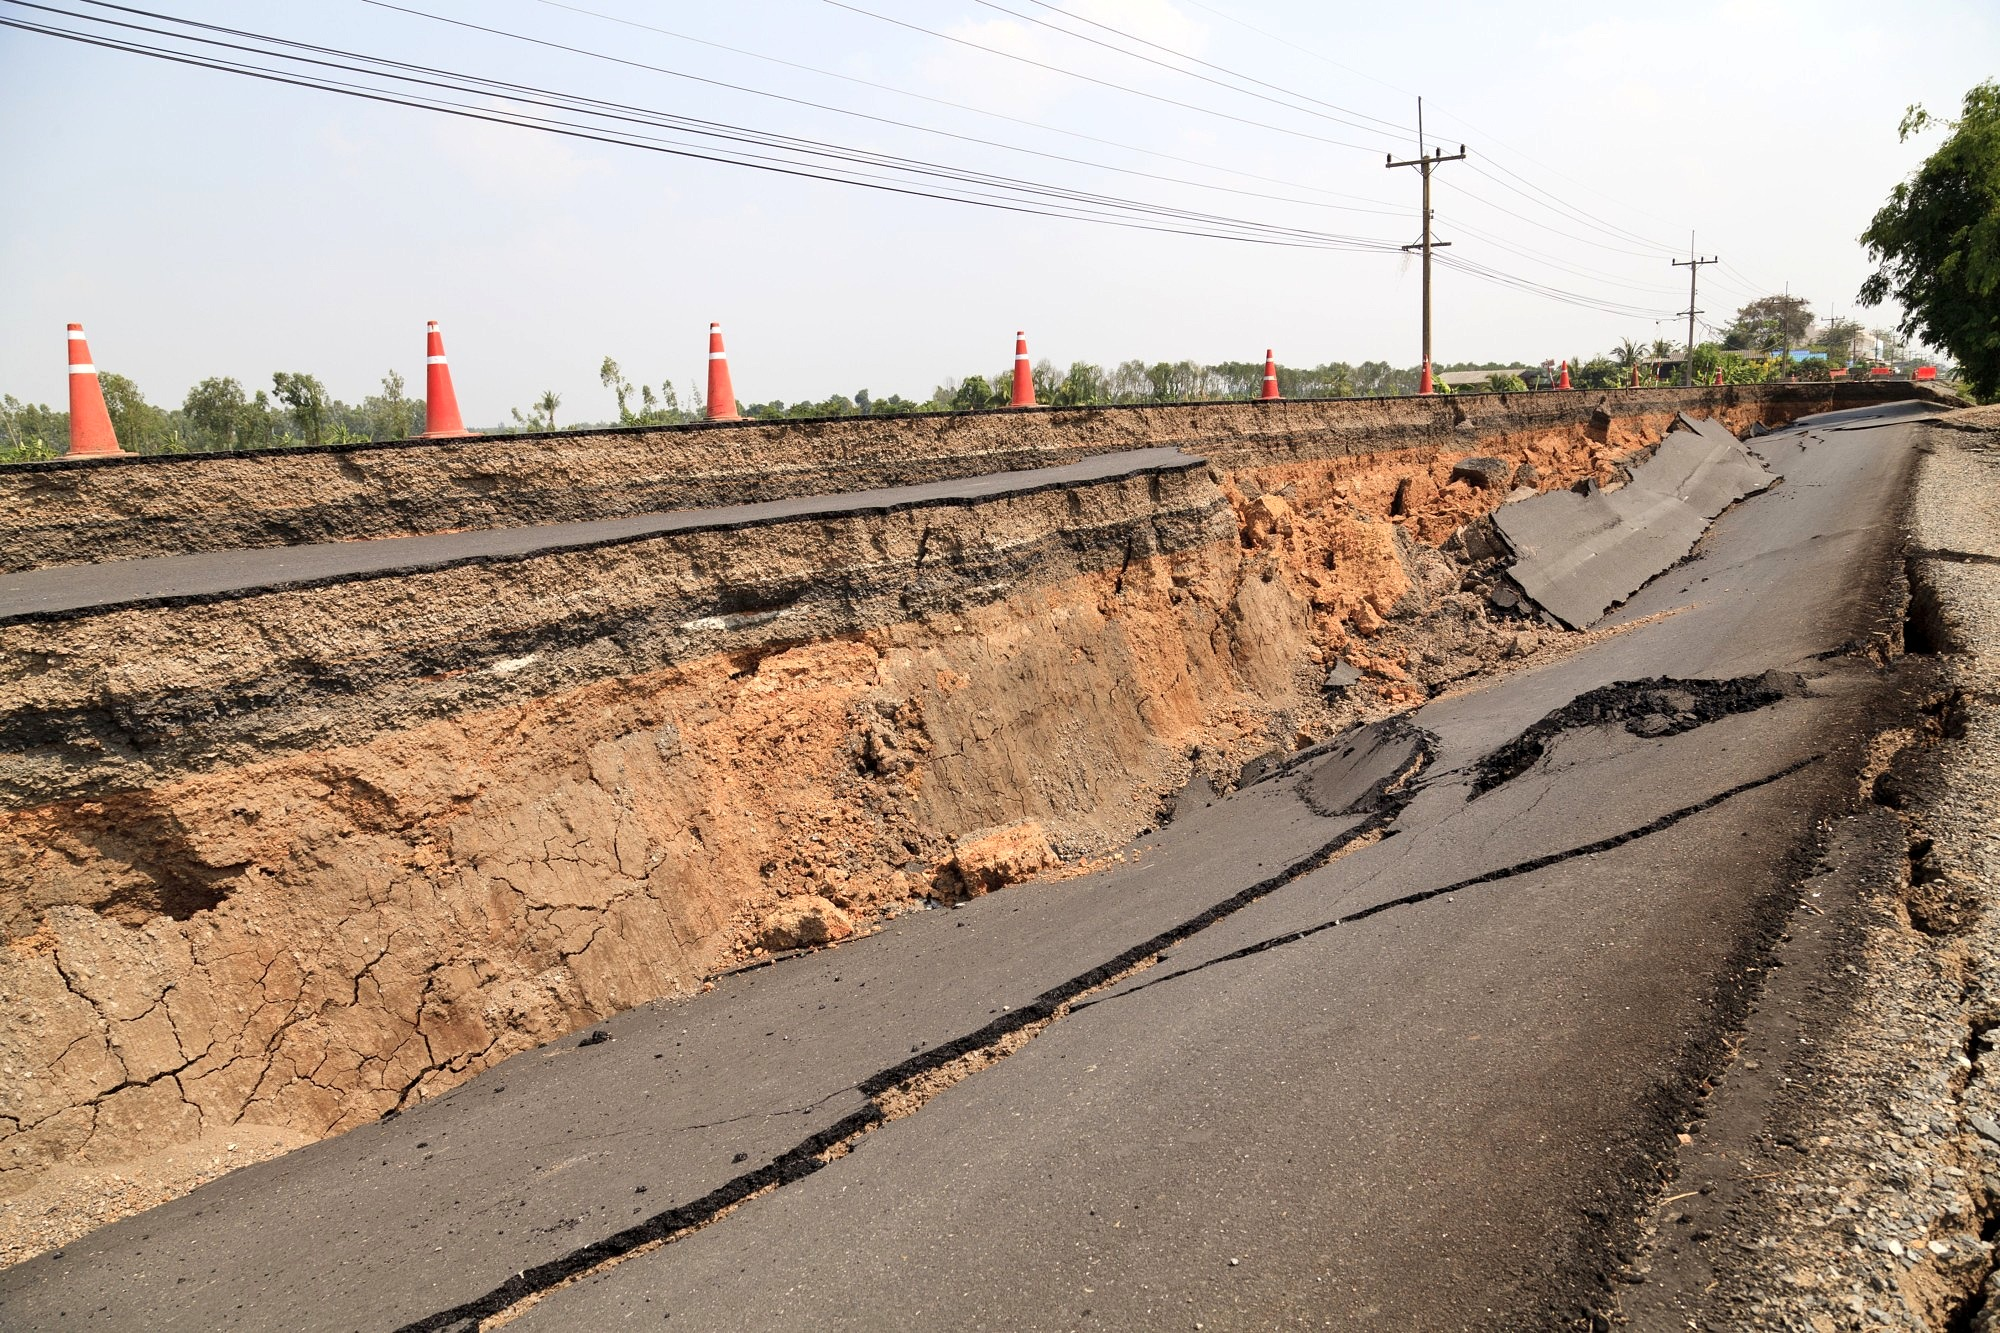 The image shows a road that was destroyed by an earthquake.